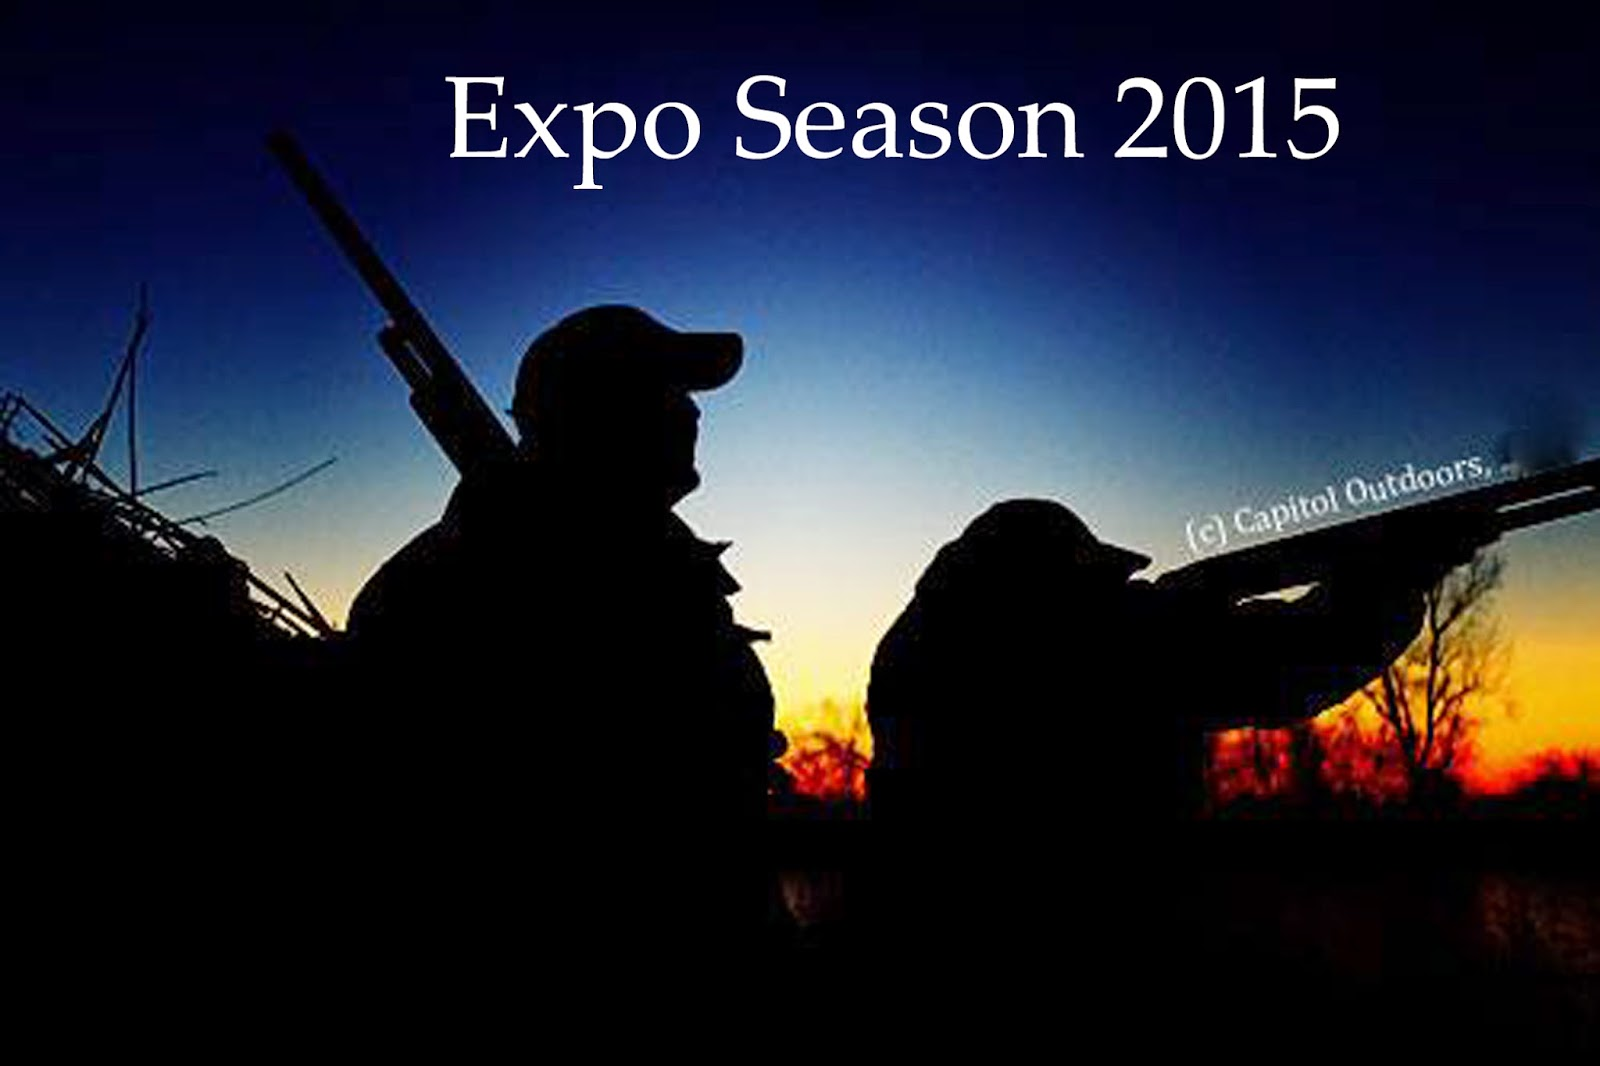 Capitol outdoors illinois 39 hunting and fishing resource for Hunting and fishing expo